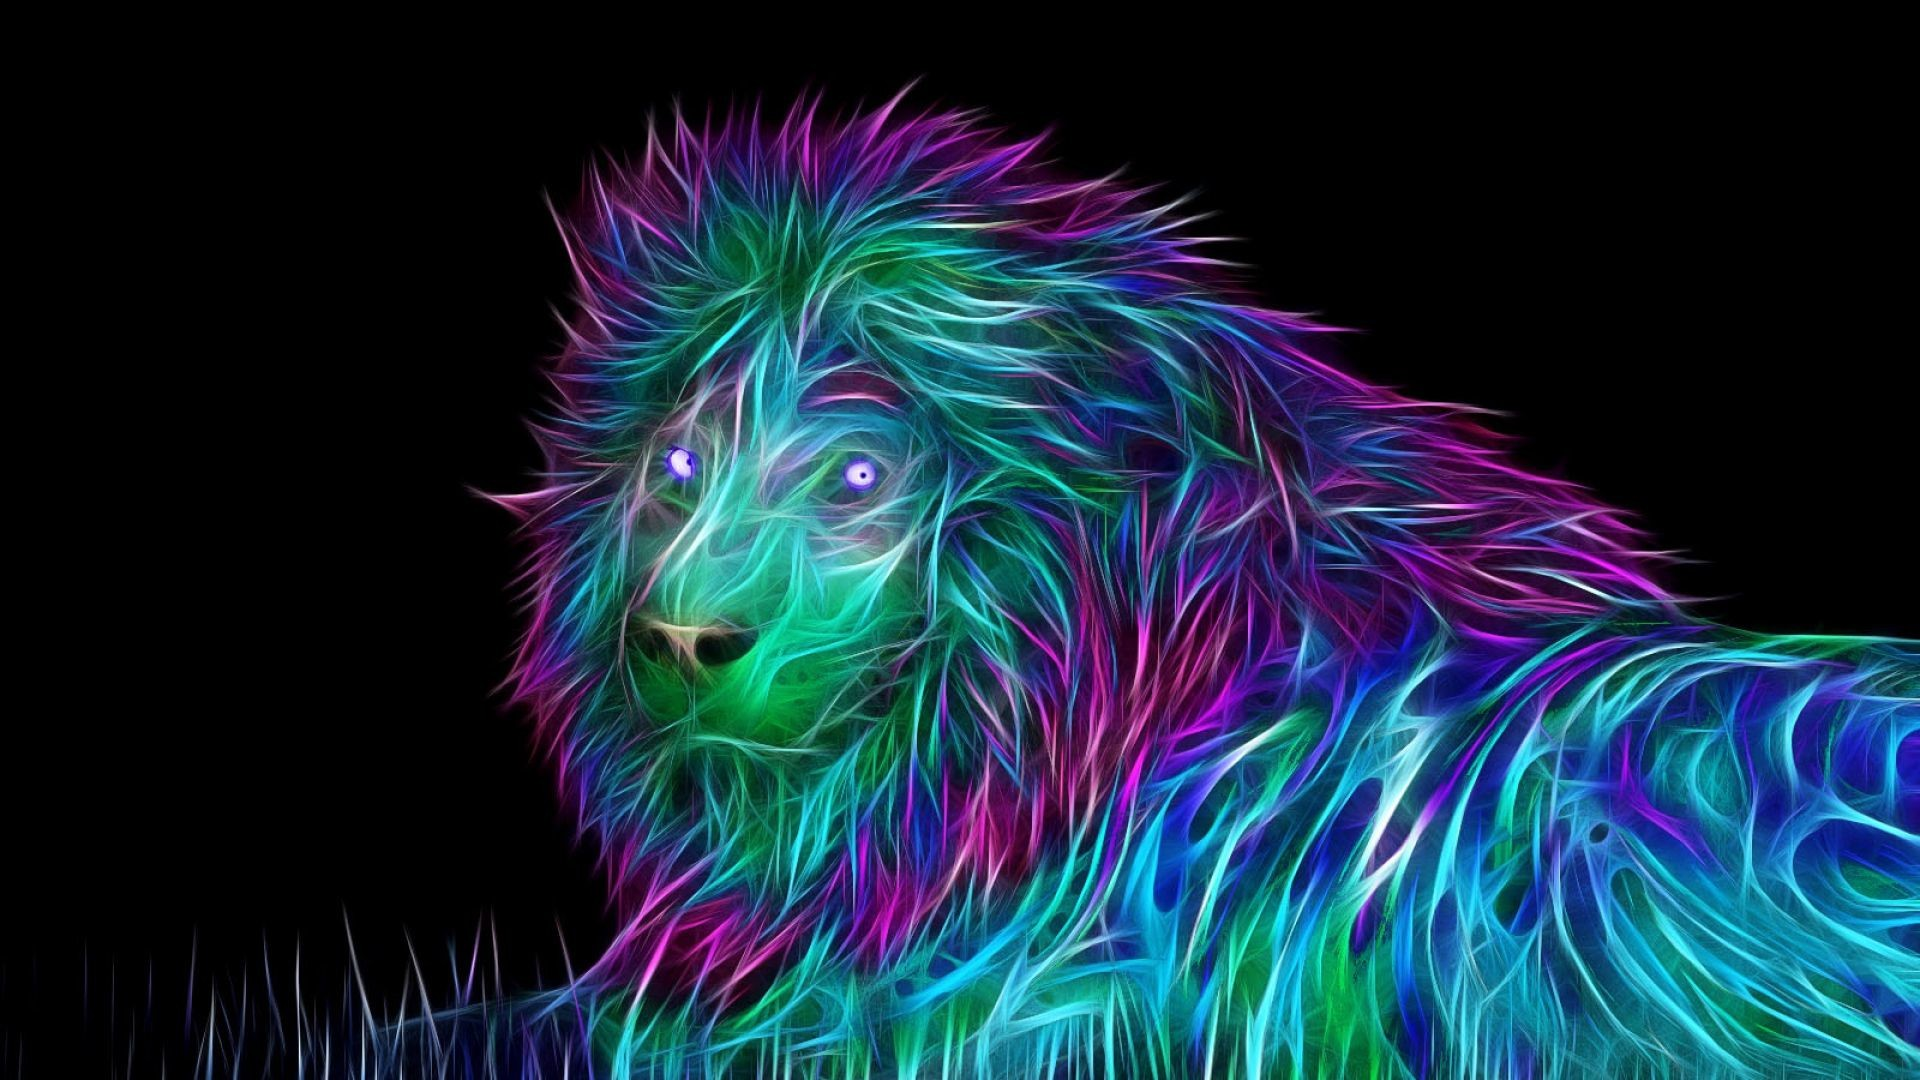 Res: 1920x1080, abstract 3d art lion 1080p